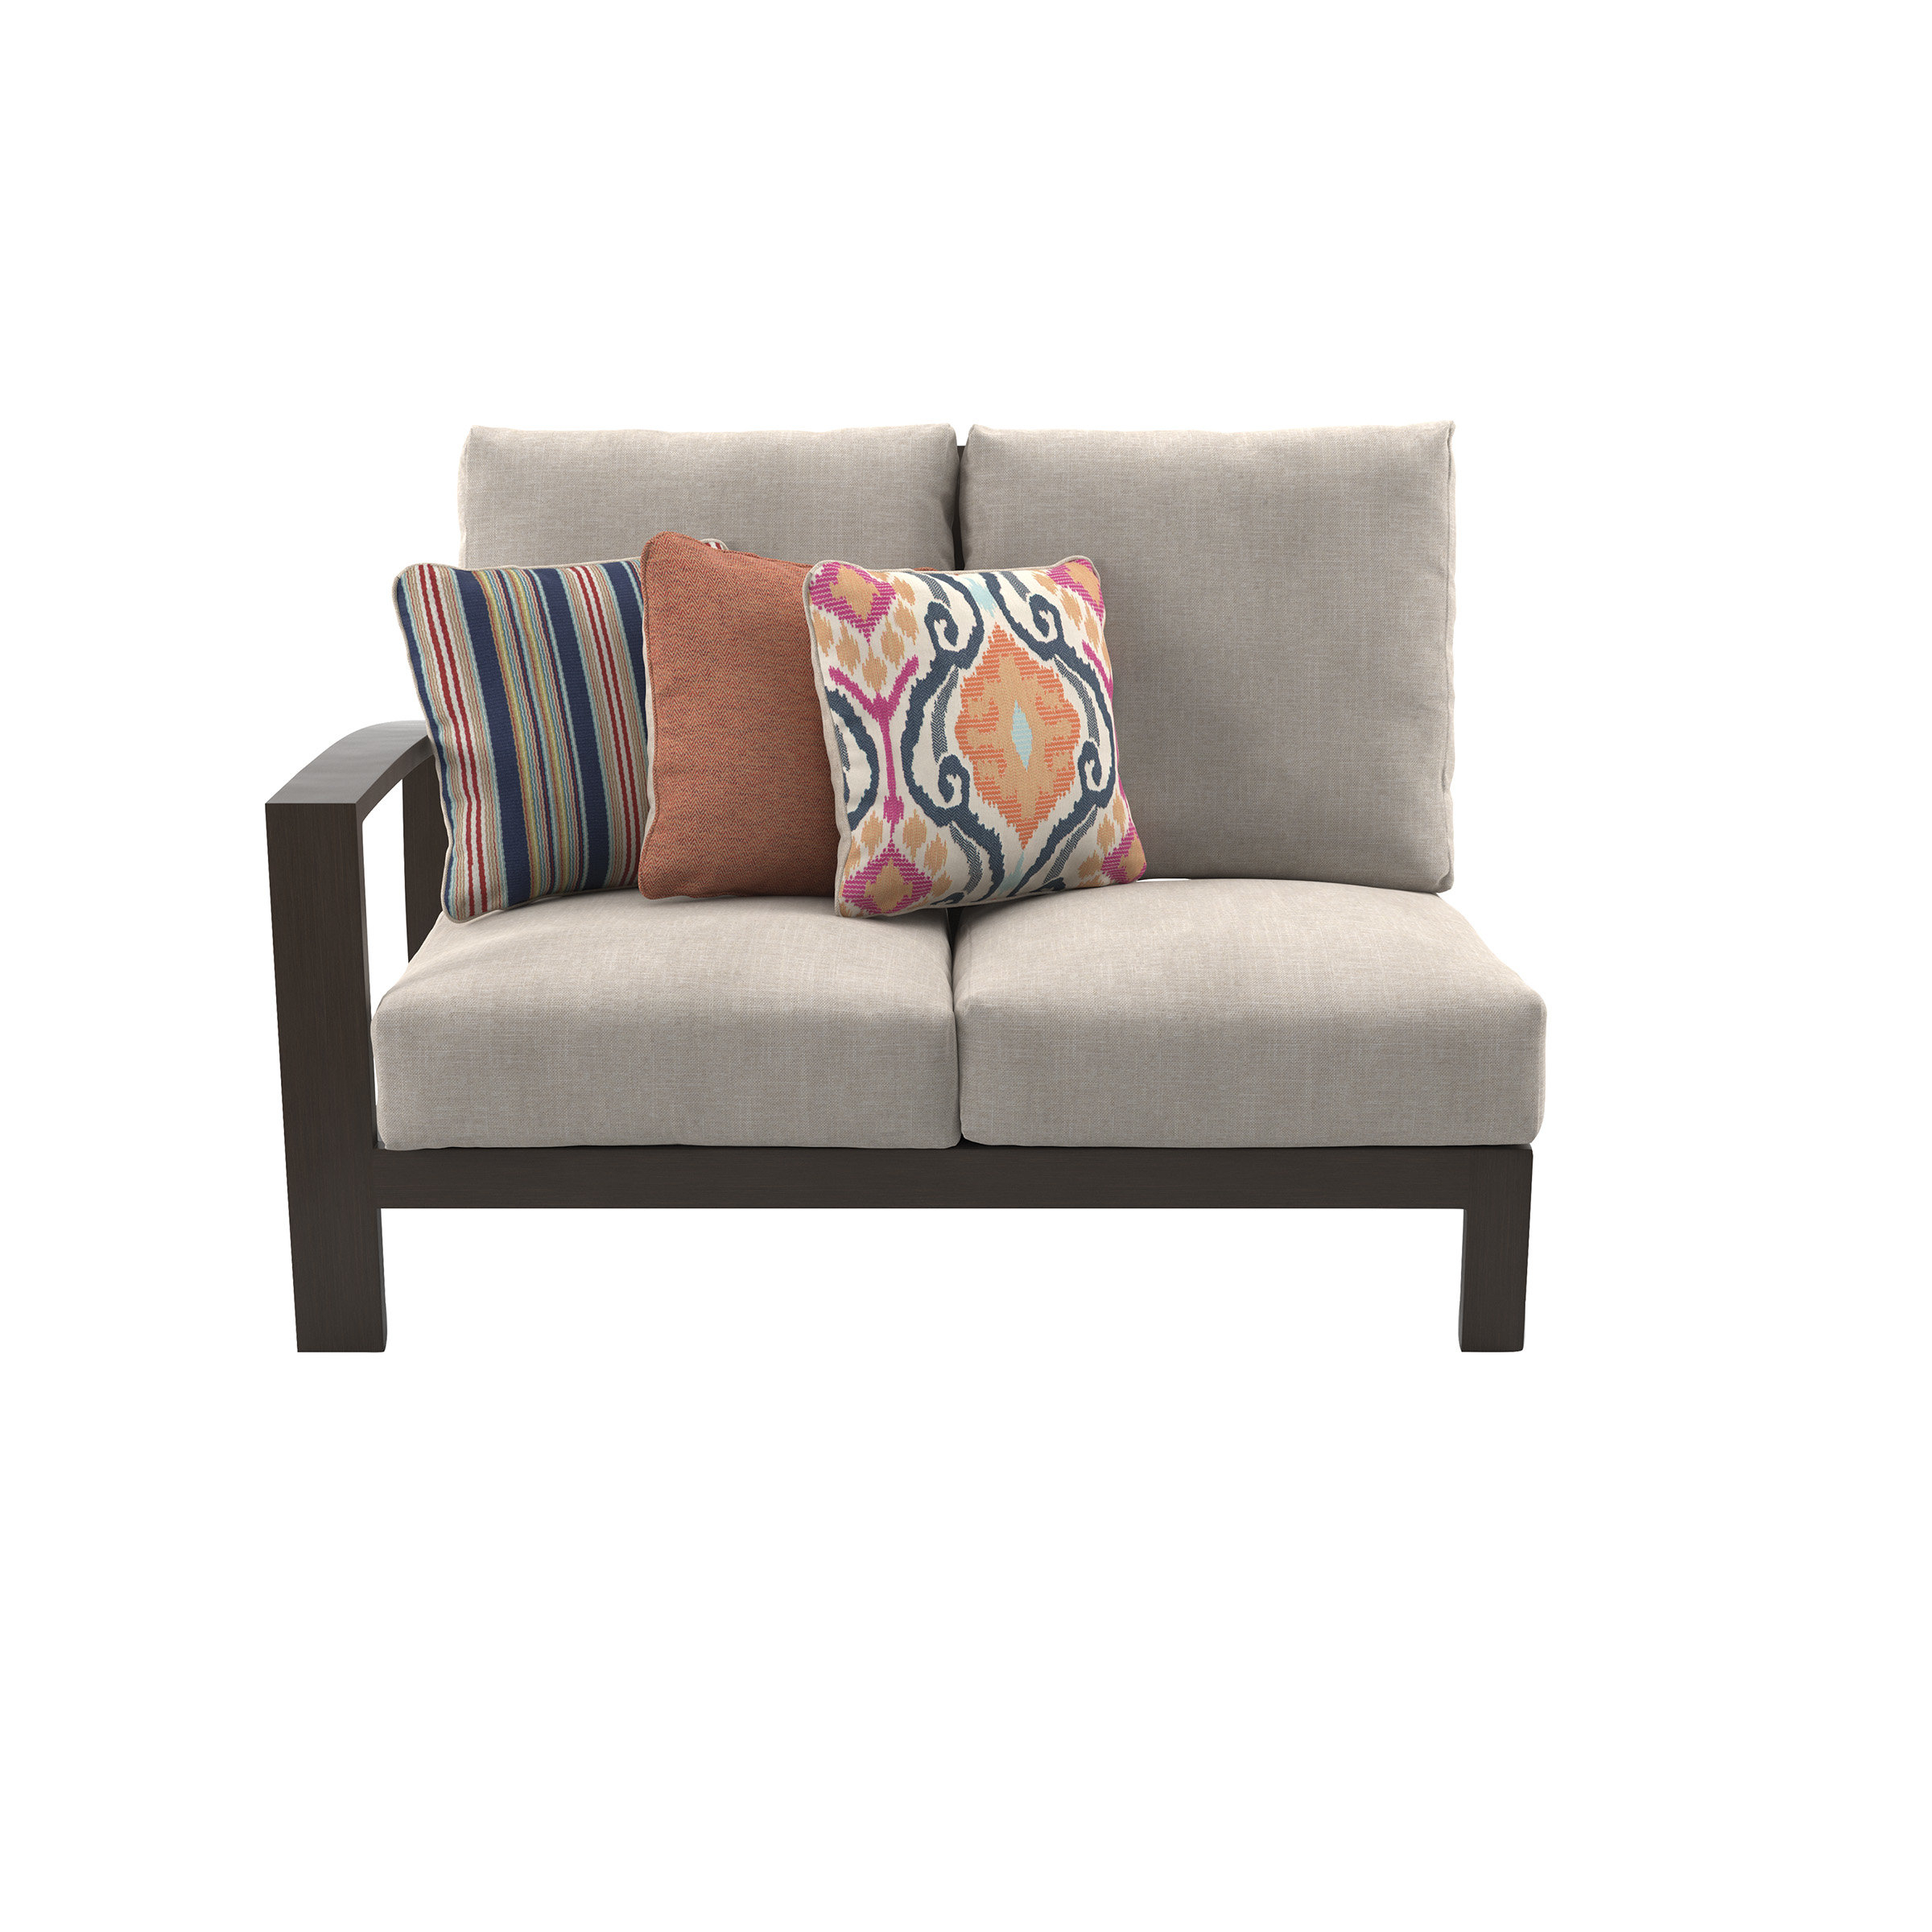 Widely Used Jay Loveseat With Cushions Inside Clifford Loveseats With Cushion (Gallery 9 of 20)